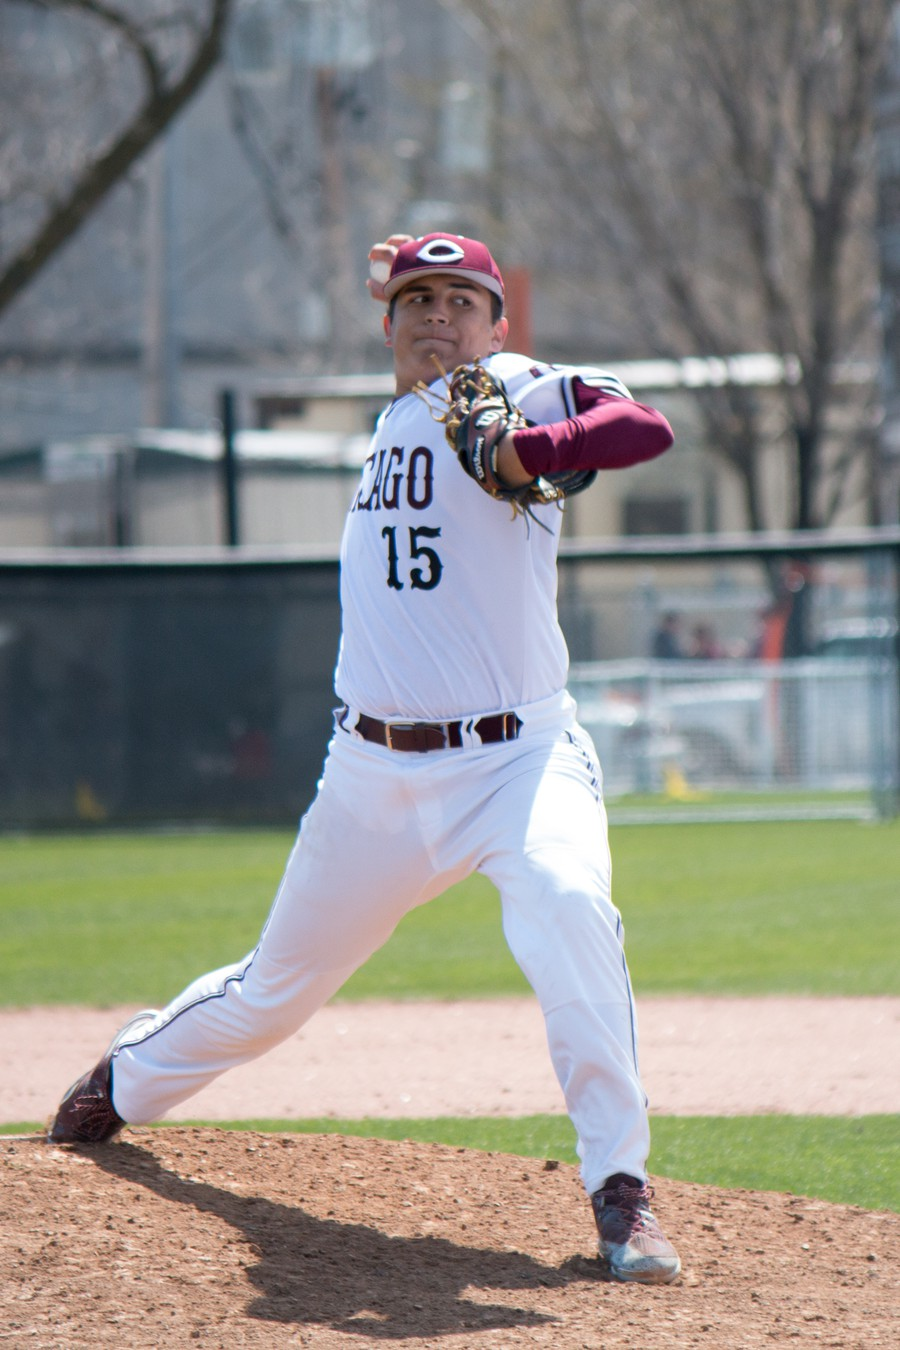 Third-year Brenton Villasenor concentrates as he prepares to pitch the ball.